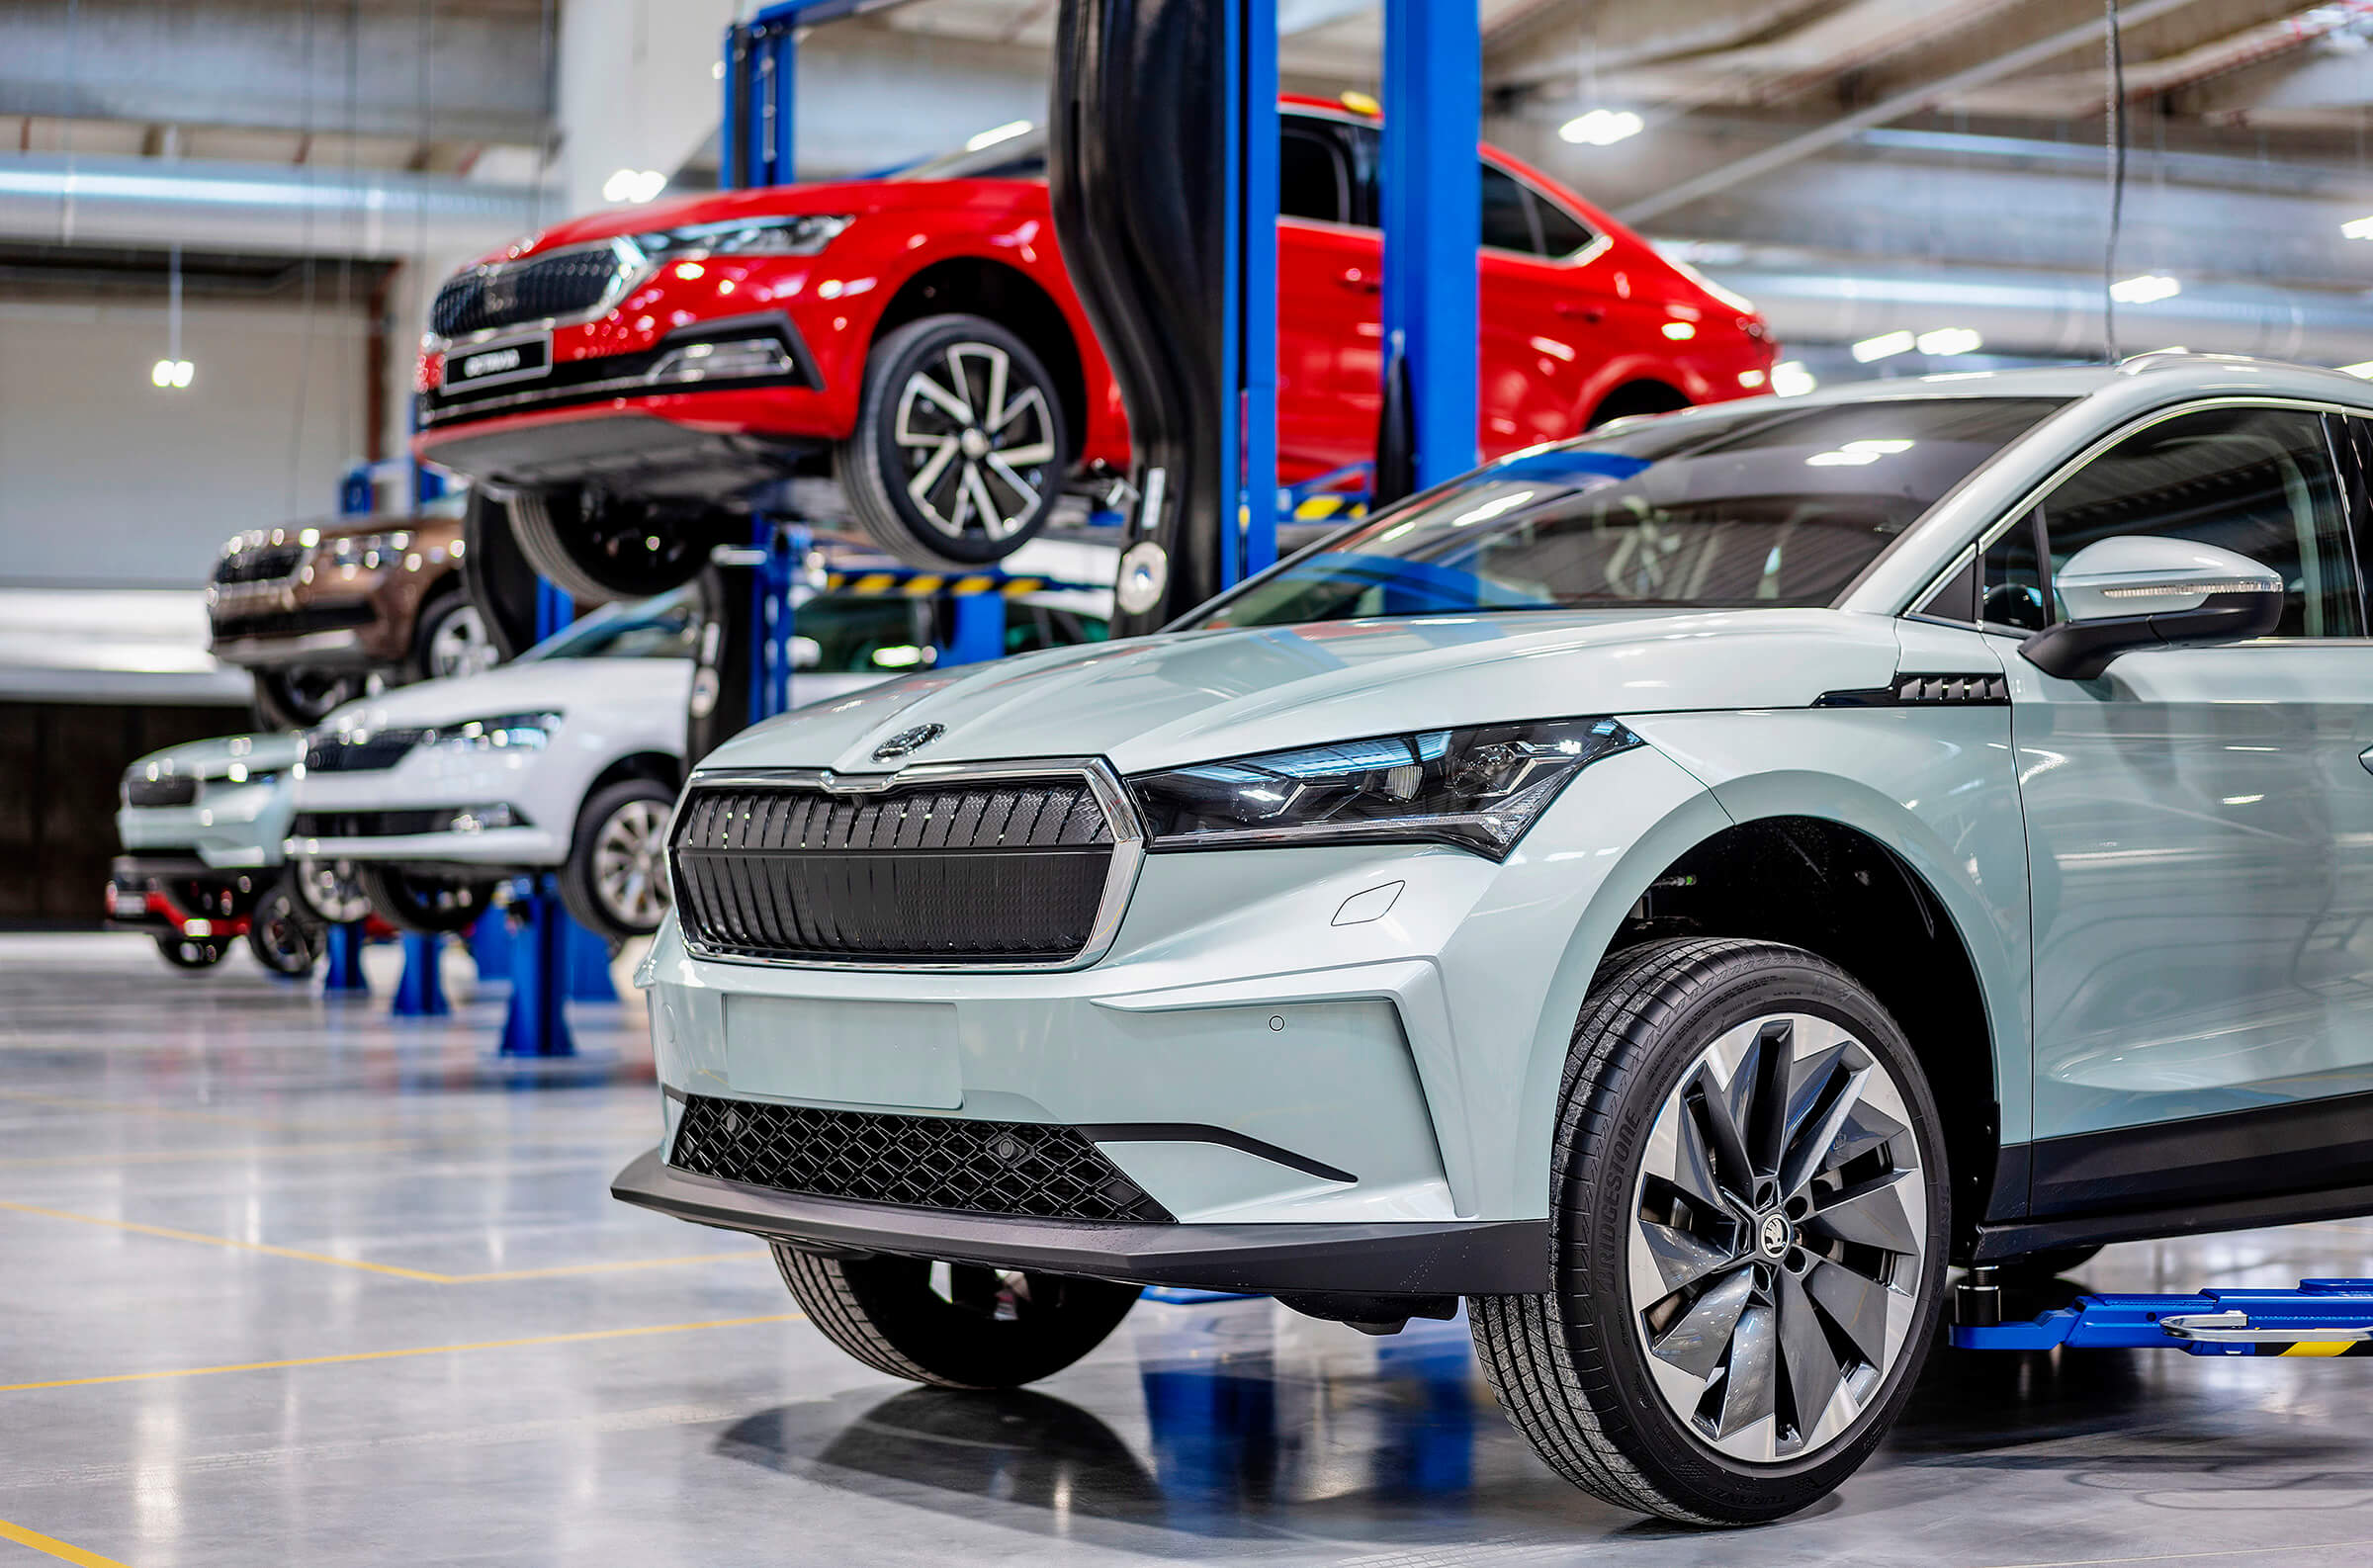 SKODA NEW TEST & CONCEPT CARS CENTER